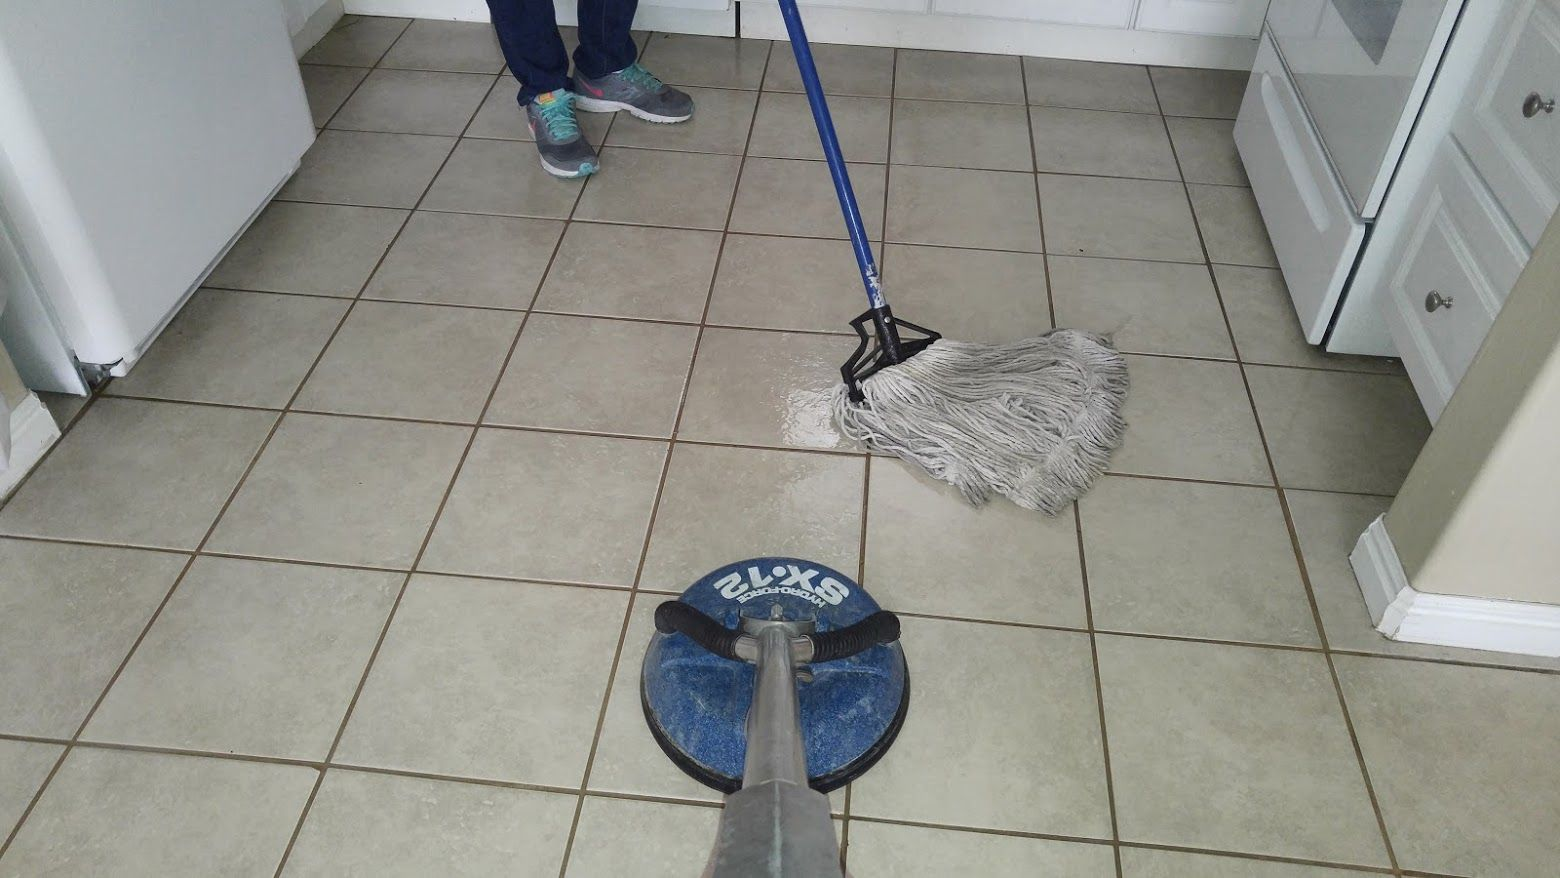 Tile And Grout Cleaning In Utah County We Scrubbed The Tile First